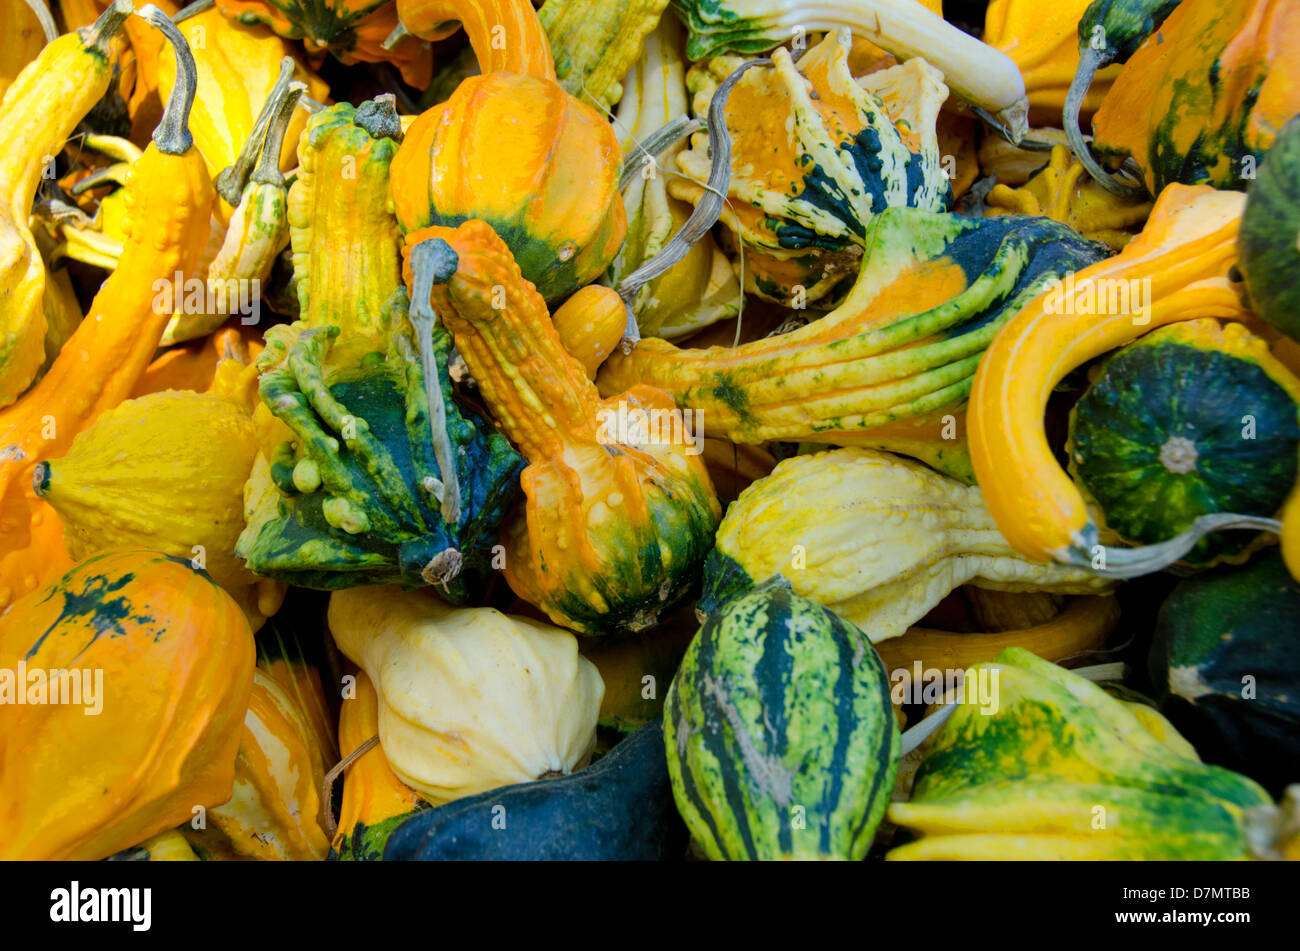 California fruit stand Autumn harvest. Ornamental 'Winged' gourds. - Stock Image